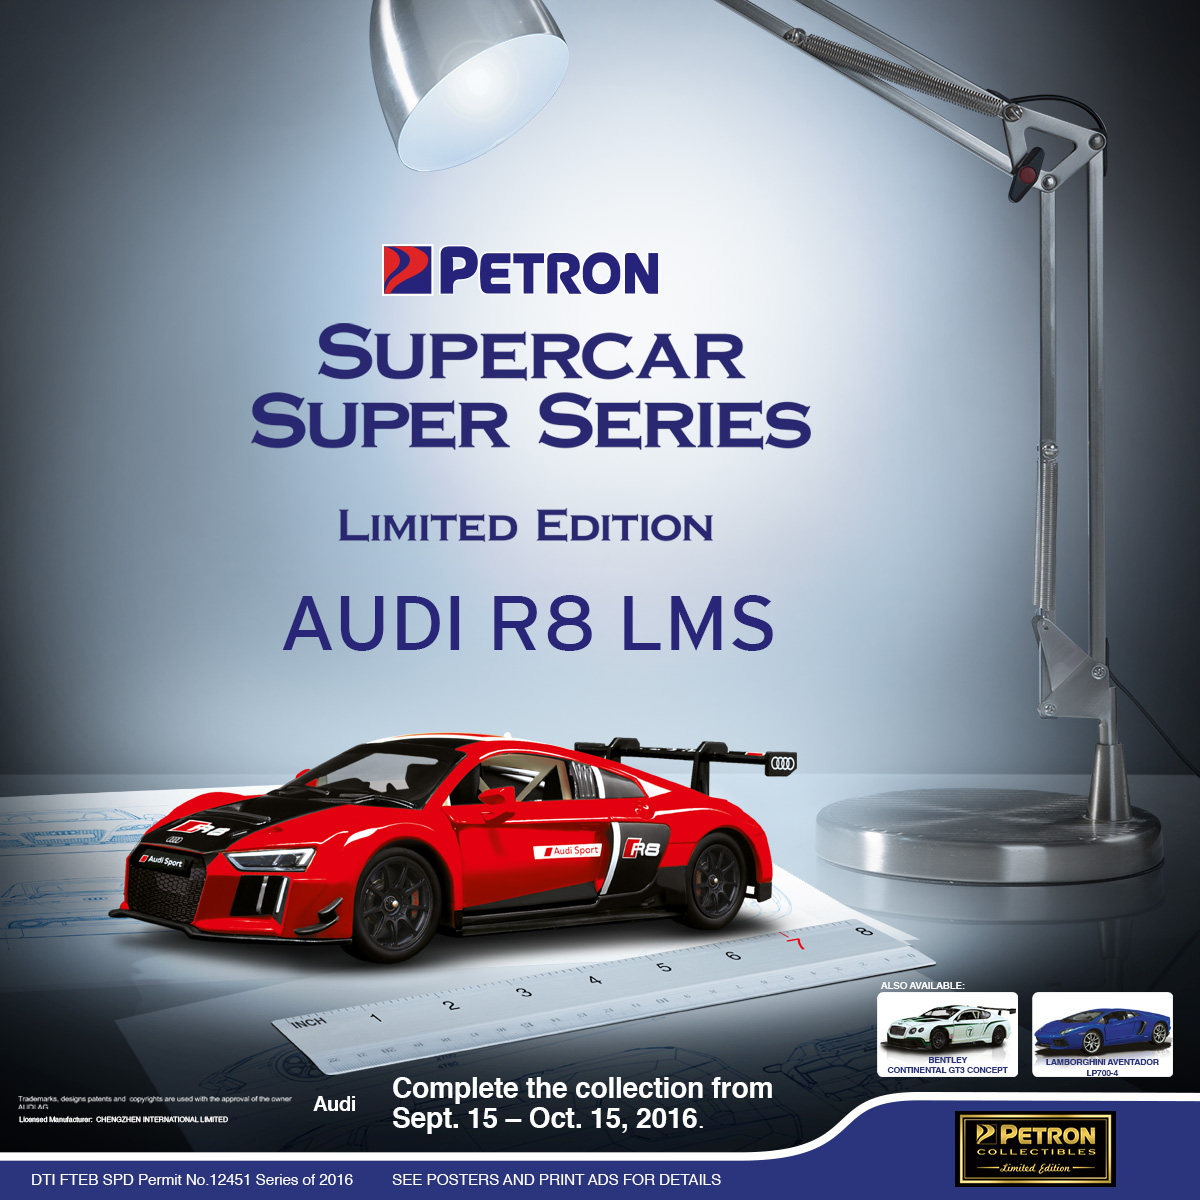 Bring These Cars Home With Petron S Supercar Series Promo